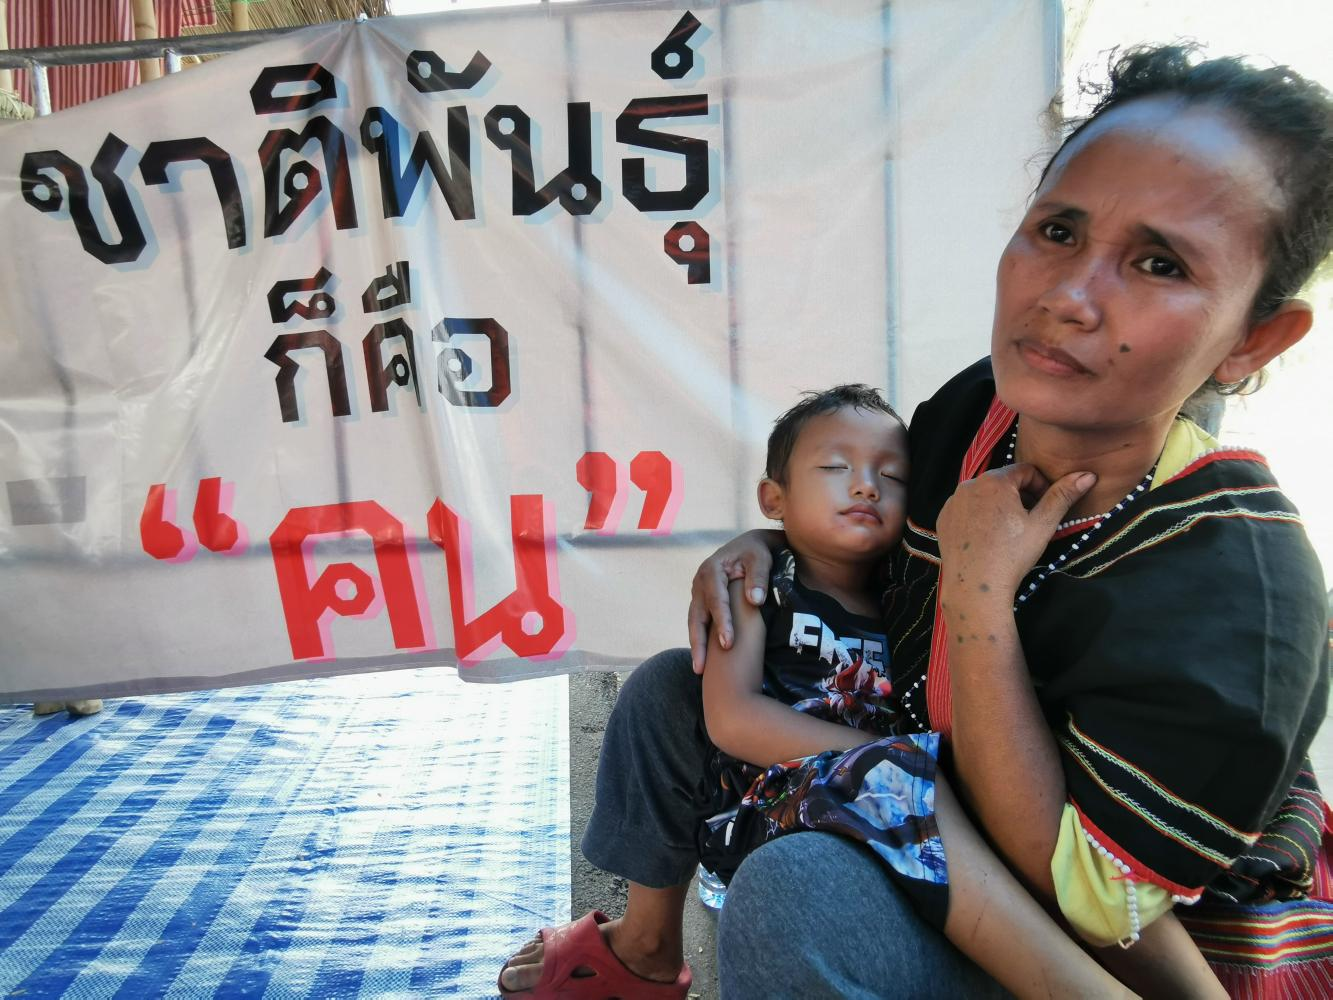 Holding her toddler, indigenous forest dweller Kib Tonnampetch, 42, says hunger and poverty at the resettlement village have forced her to return to Bang Kloi in Kaeng Krachan National Park to survive.(Photo by Sanitsuda Ekachai)